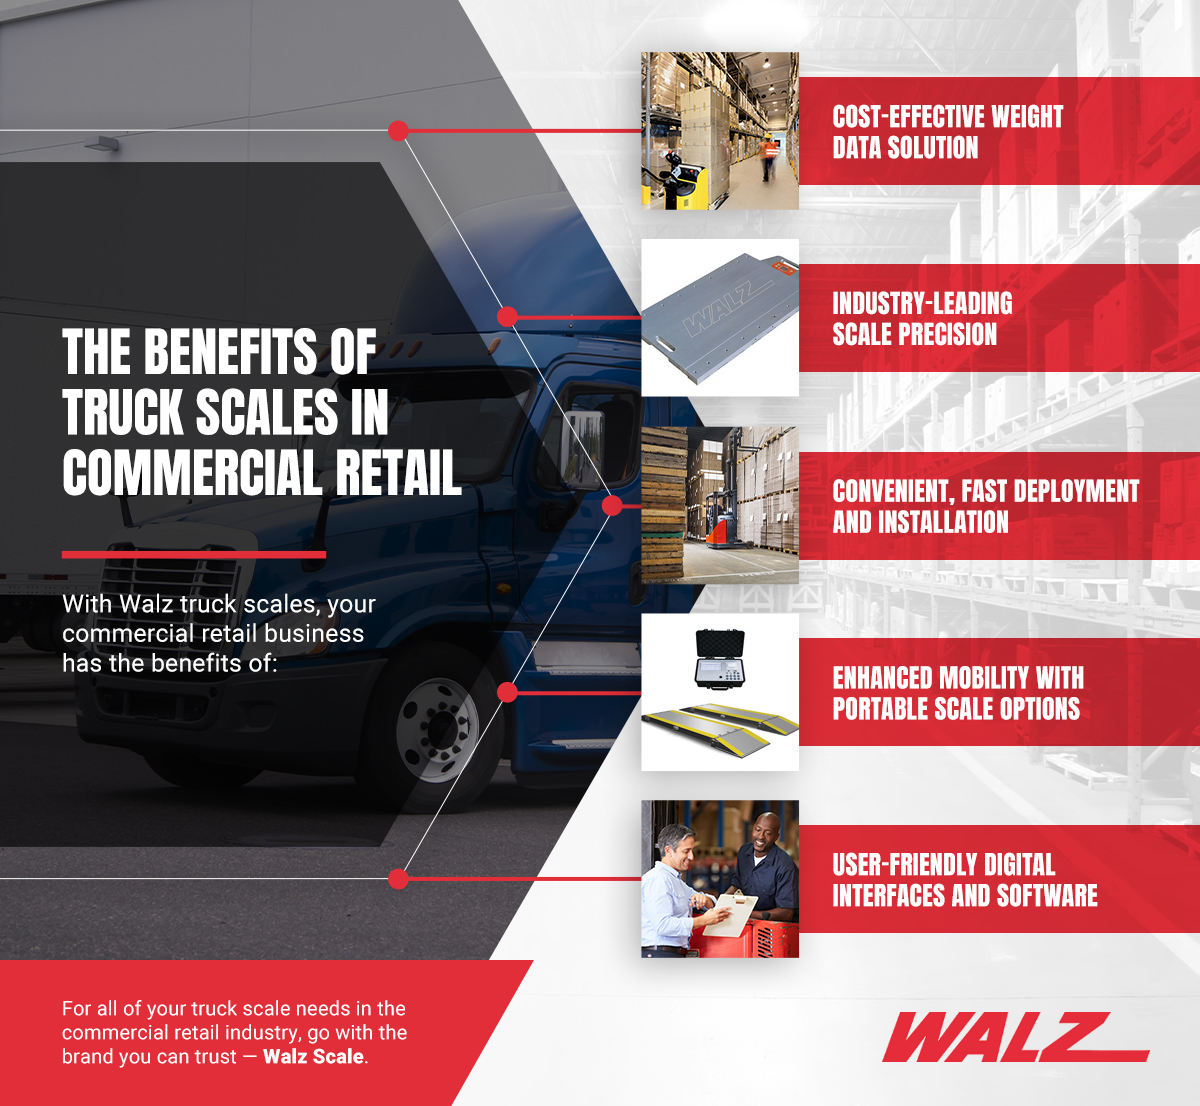 The Benefits of Truck Scales in Commercial Retail